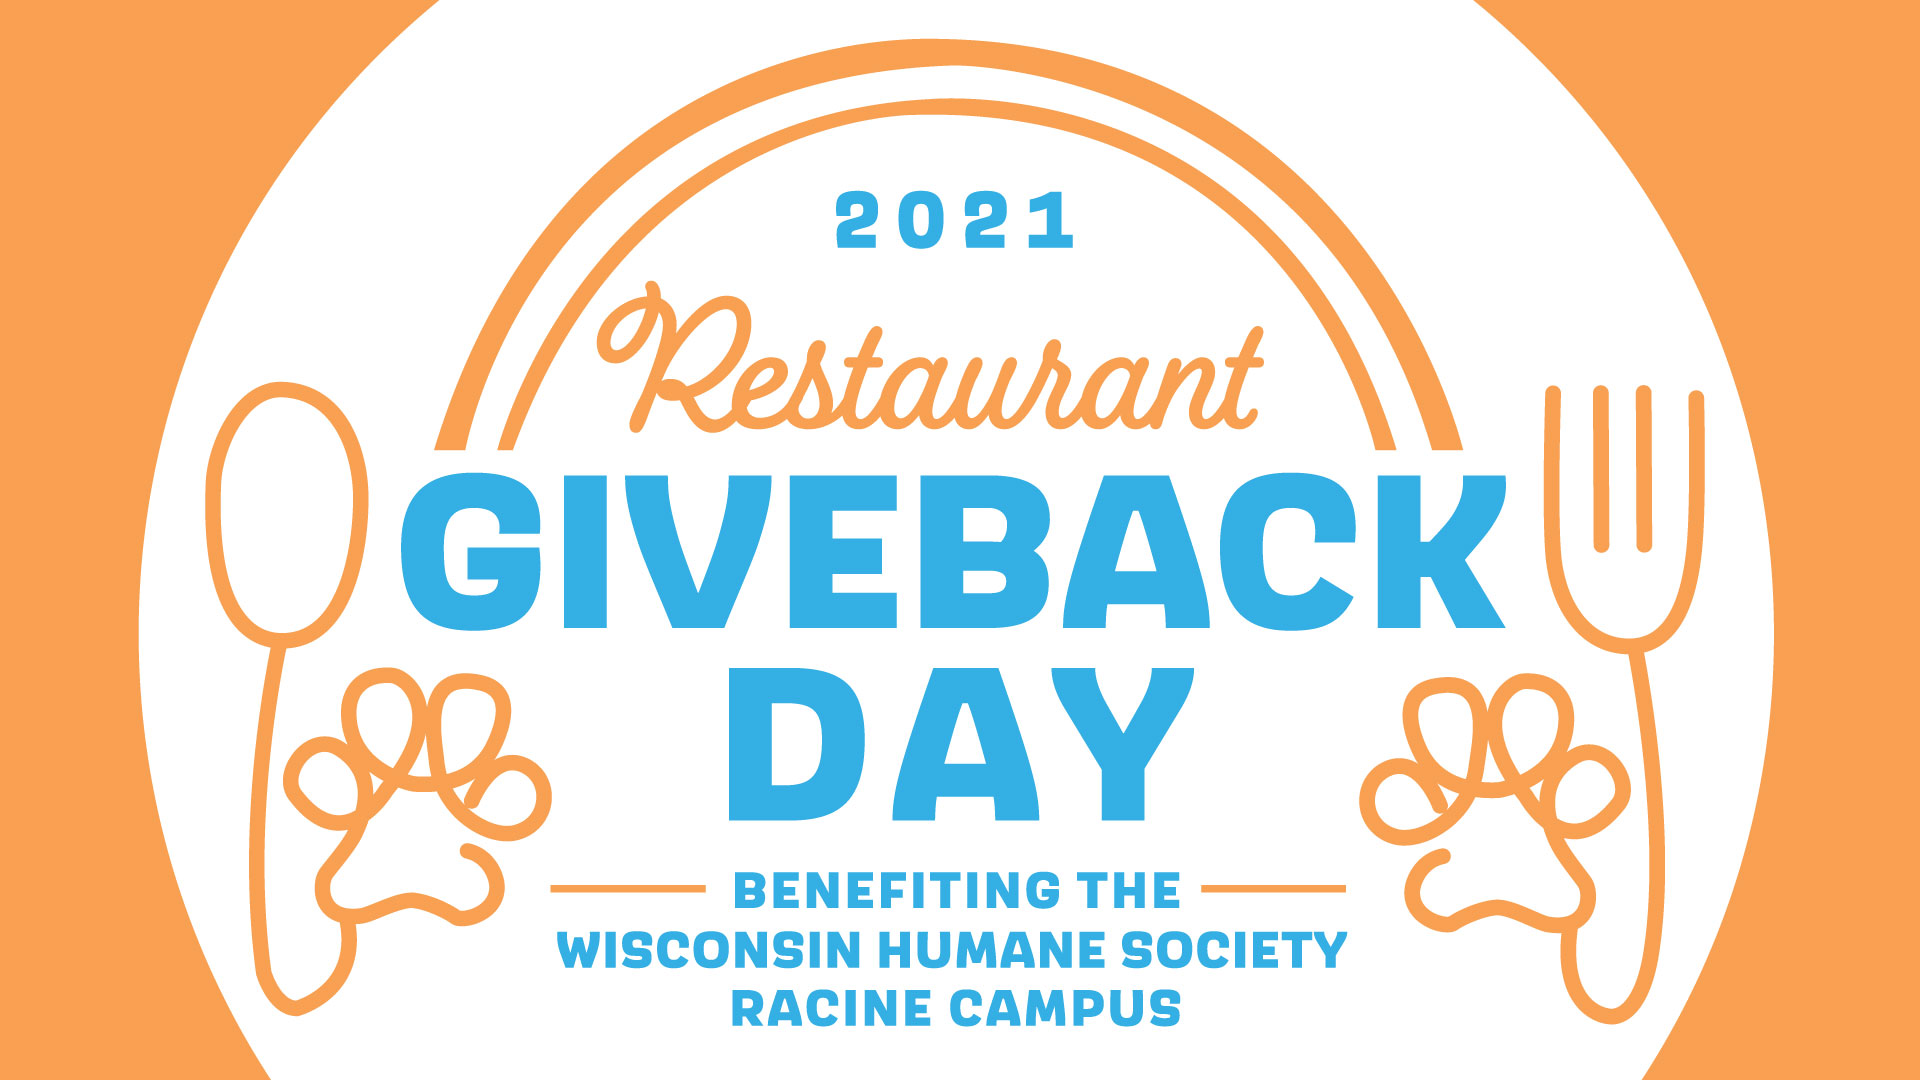 Racine-Restaurant-Giveback-Day_FB-eventer-header.jpg